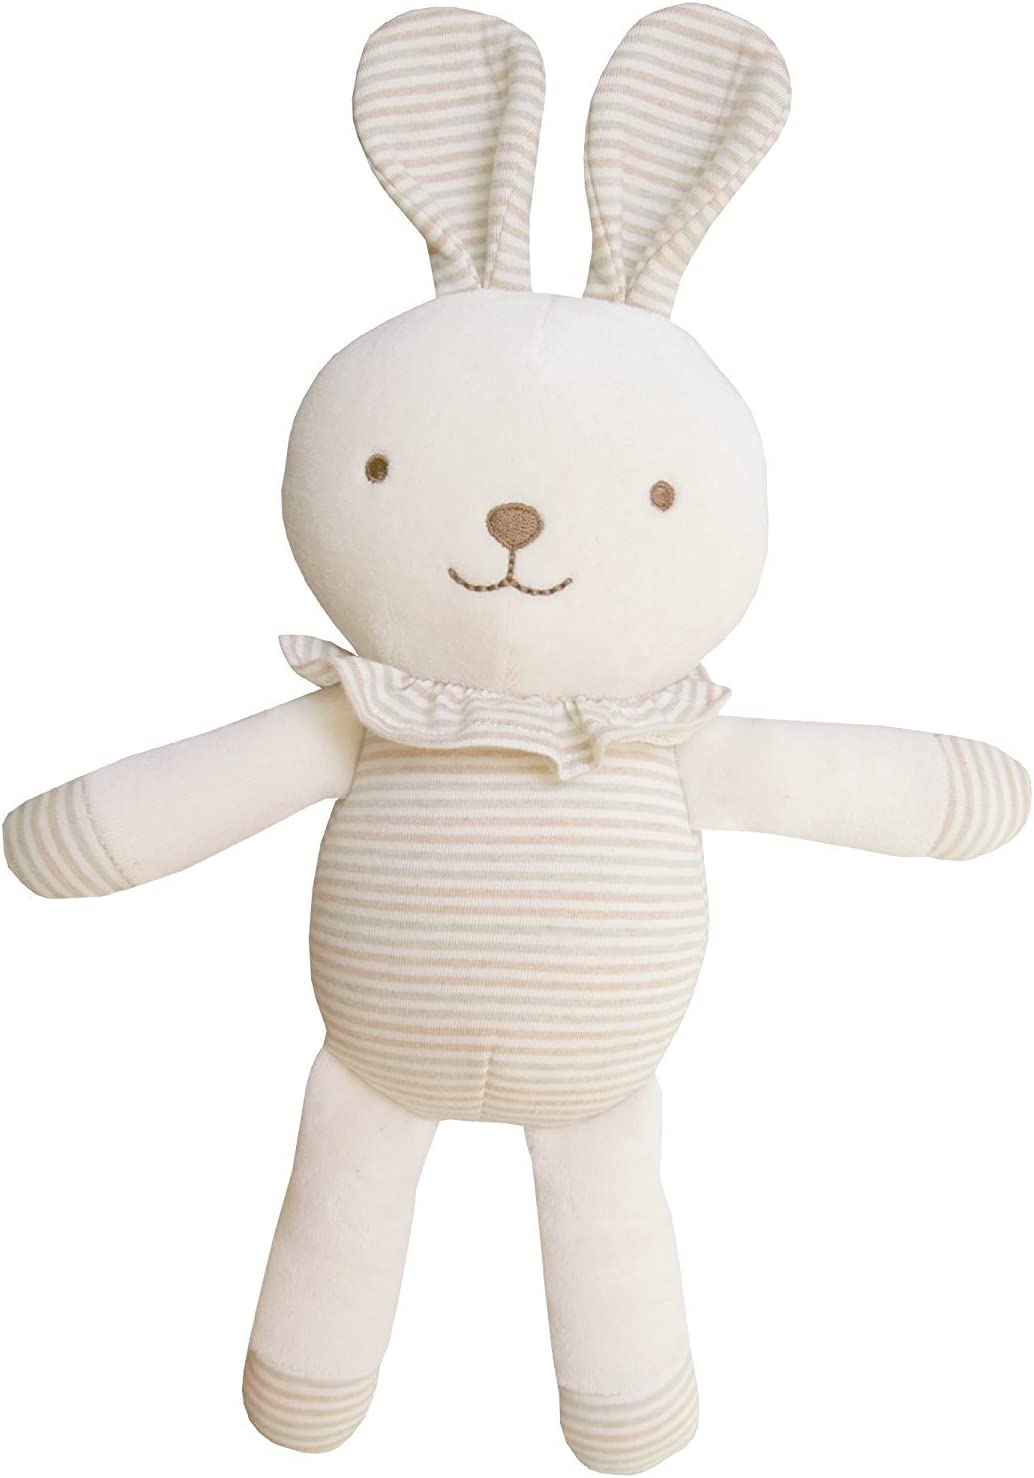 Made in New Zealand Squirrel Tree Organic Cotton Baby Gift Set with Bib Beanie and Teething Toy